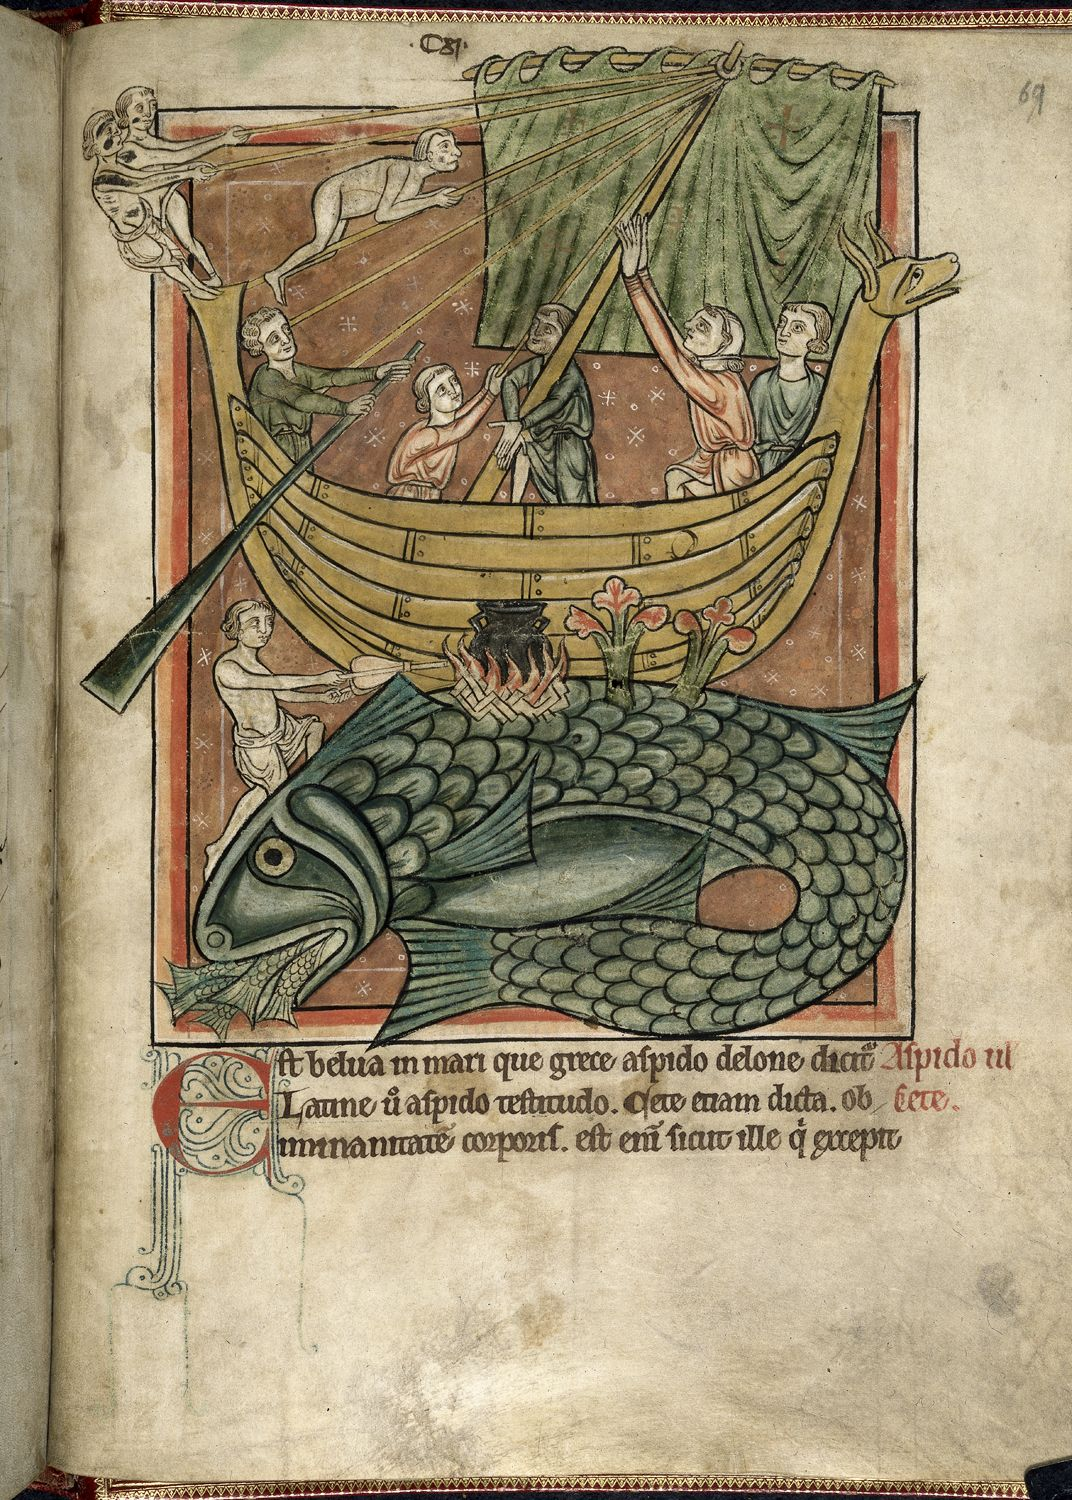 A fish-shaped whale is curled at the bottom of the frame. On its back rests a wooden ship filled with sailors, one of whom stokes a fire. Several blue fish enter the whale's open mouth, their faces concealed.